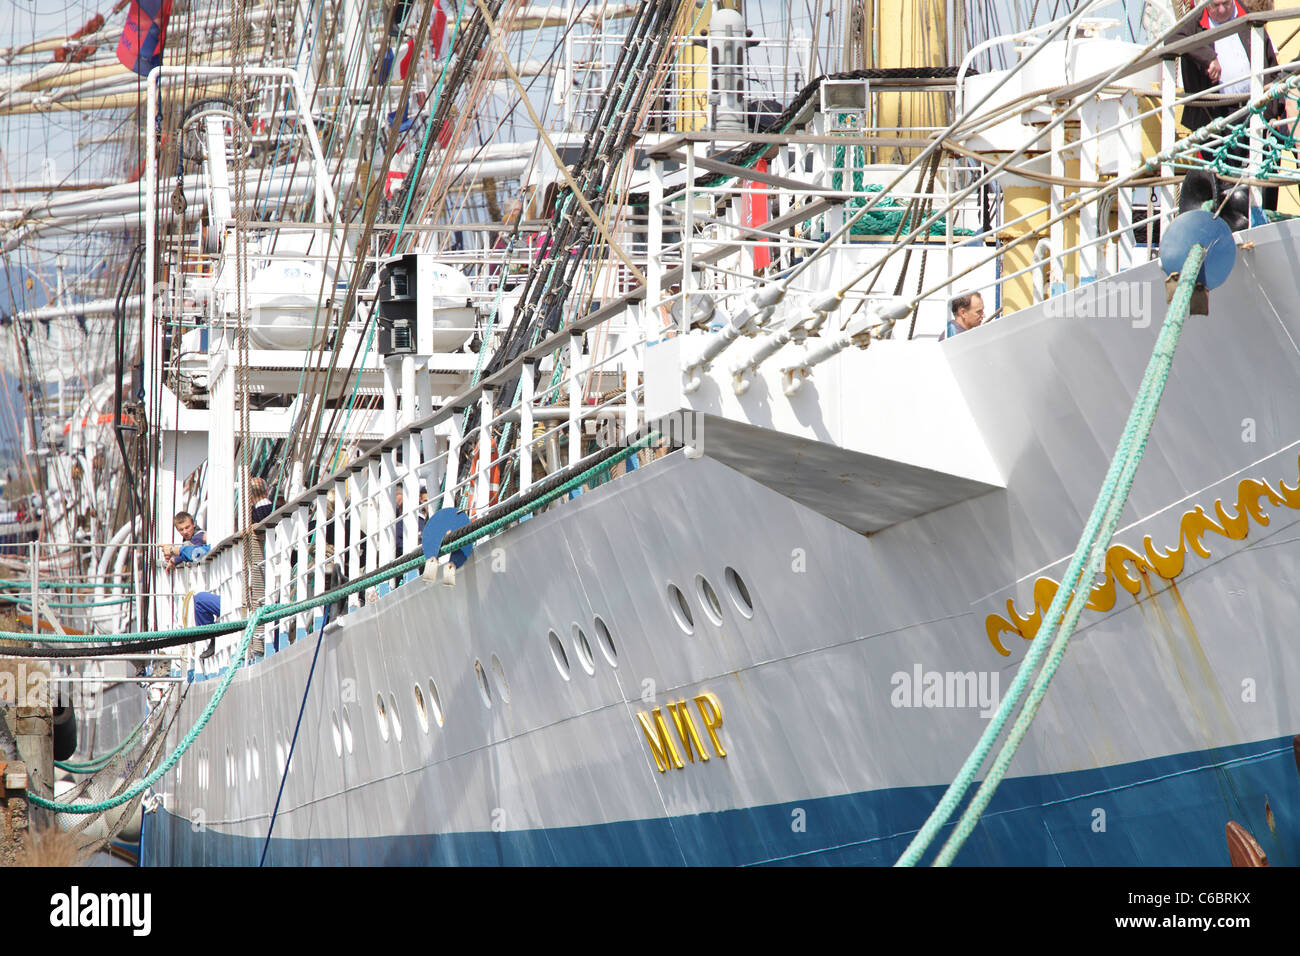 A ship berthed at the Tall Ships Race 2011 in Greenock, Scotland, UK - Stock Image